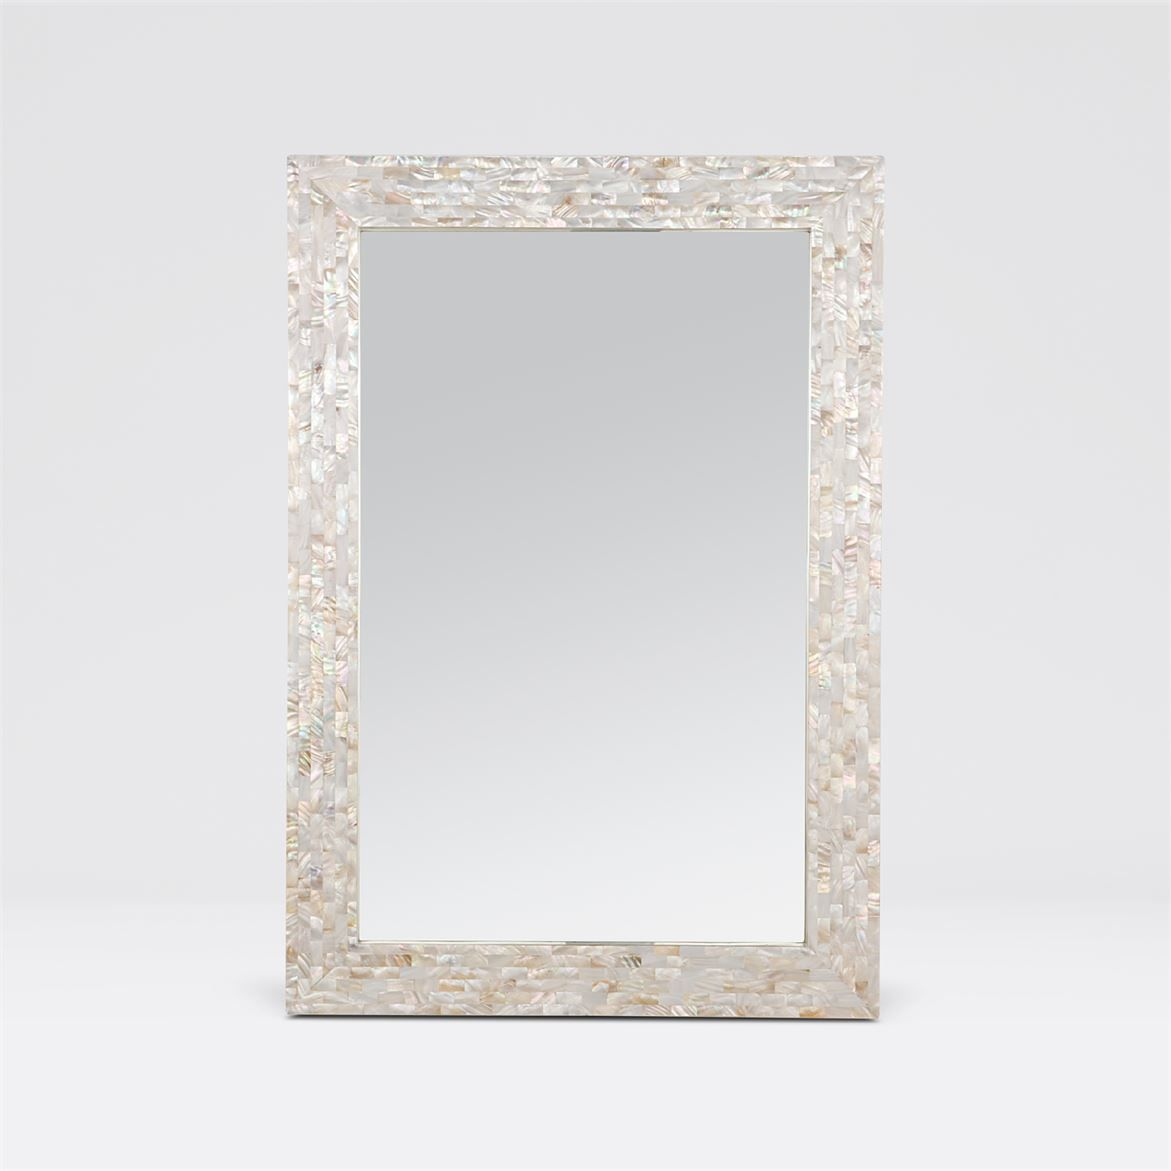 32x52 So Would Be Mounted On Wall This Is Bone Click Through To See More Accurate Picture Of Texture Powder Room Mirror Master Bath Mirror Shell Mirror